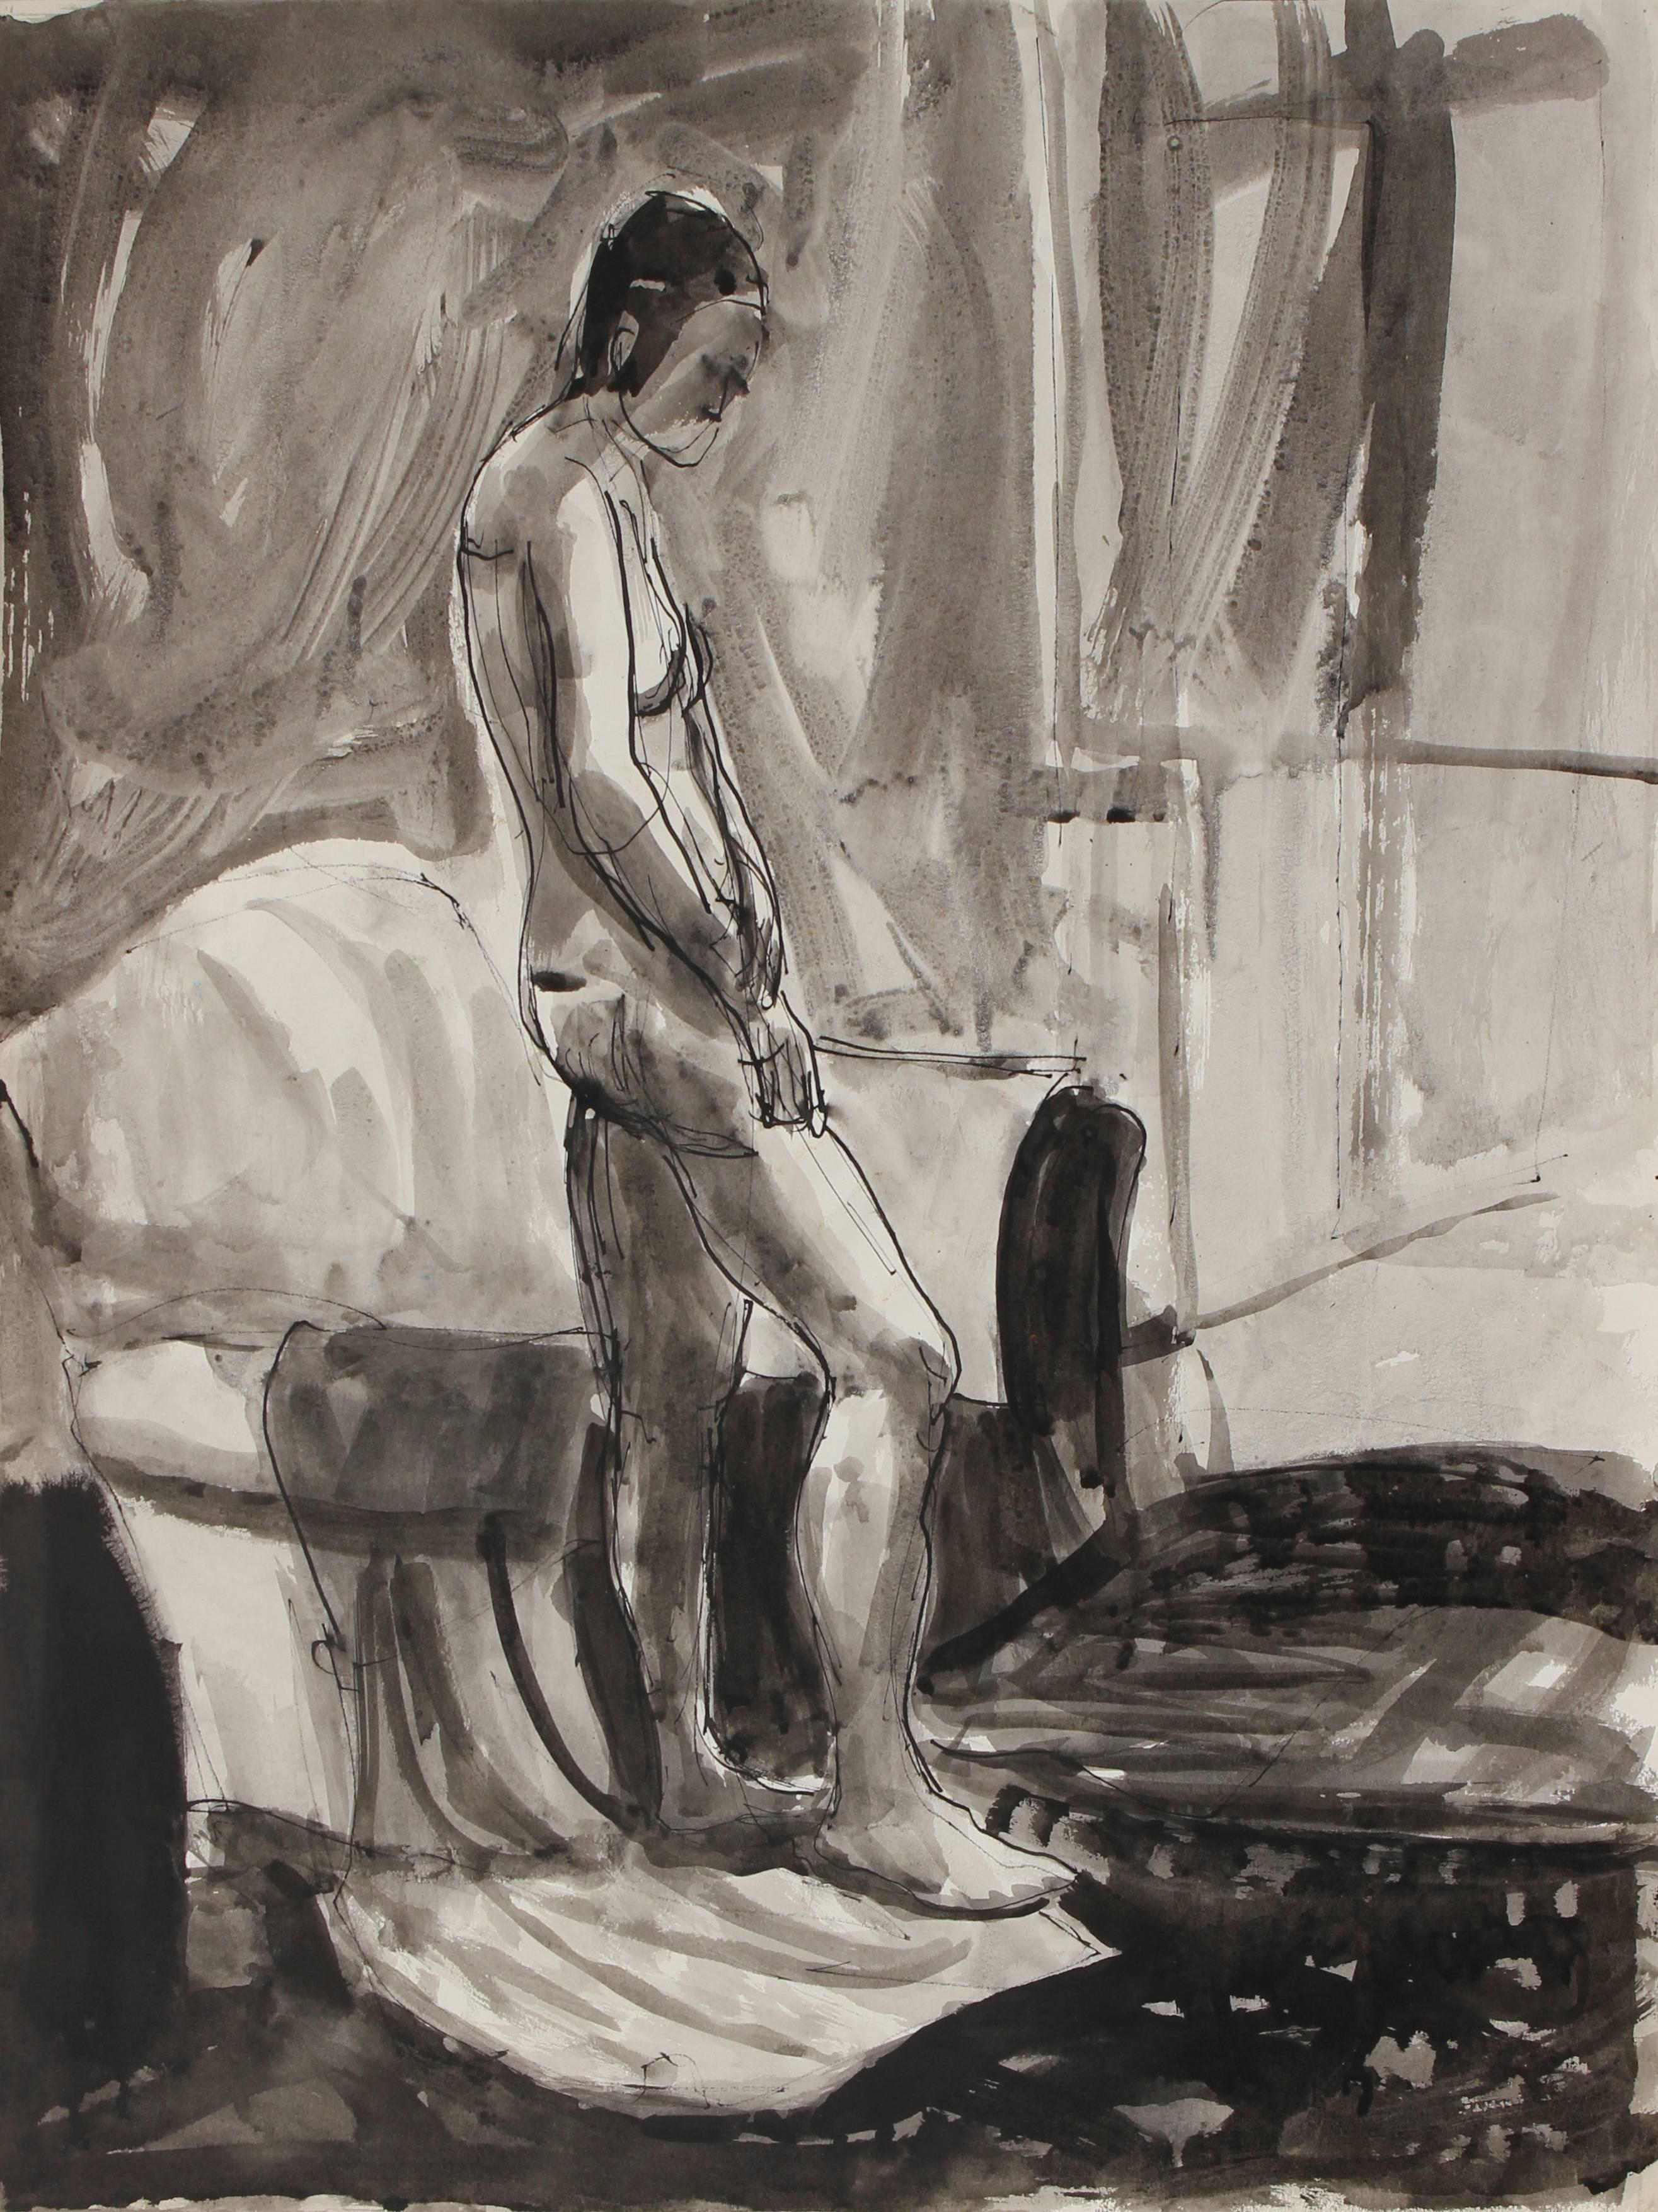 Monochromatic Expressionist Interior with Figure, Ink Drawing, 1976